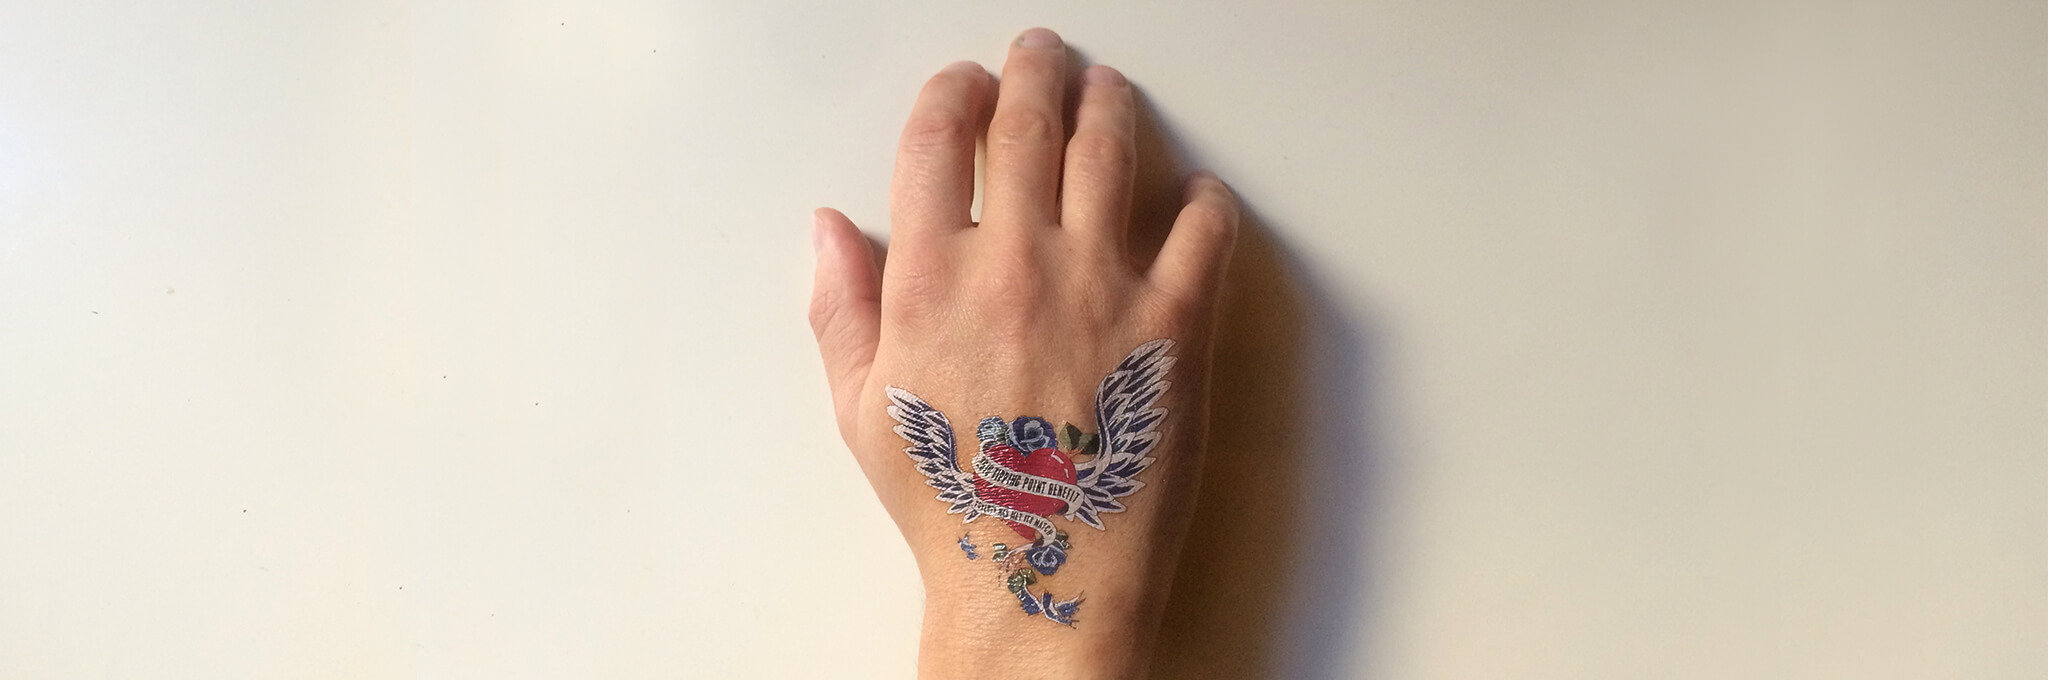 Back of right hand with winged-heart tattoo